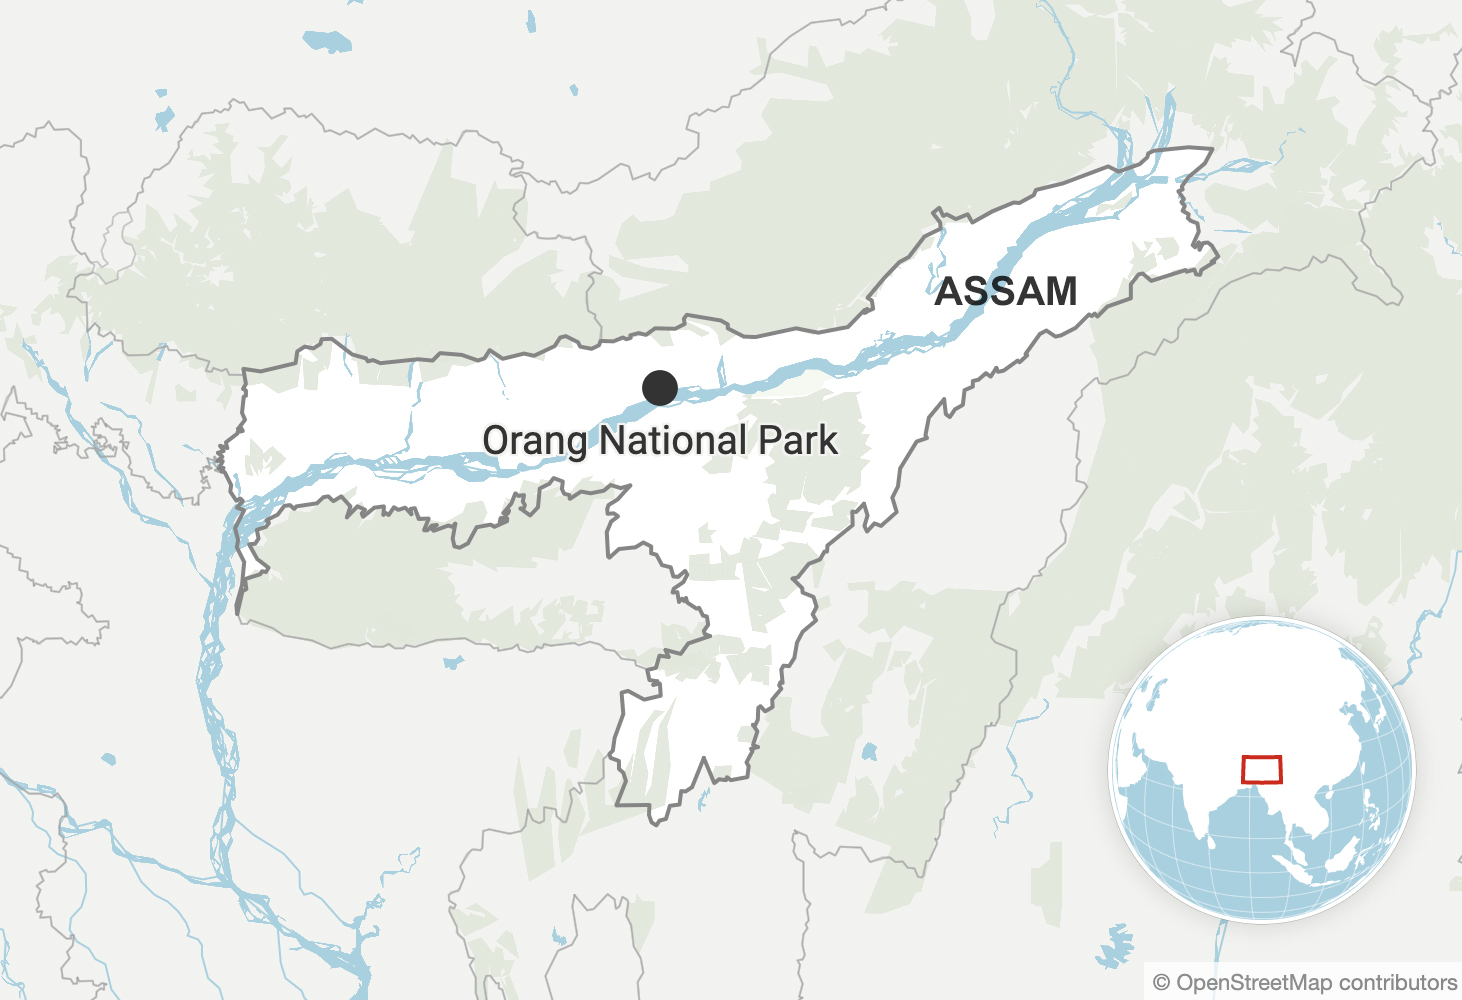 Oorang National Park in Assam. Map made with Datawrapper.